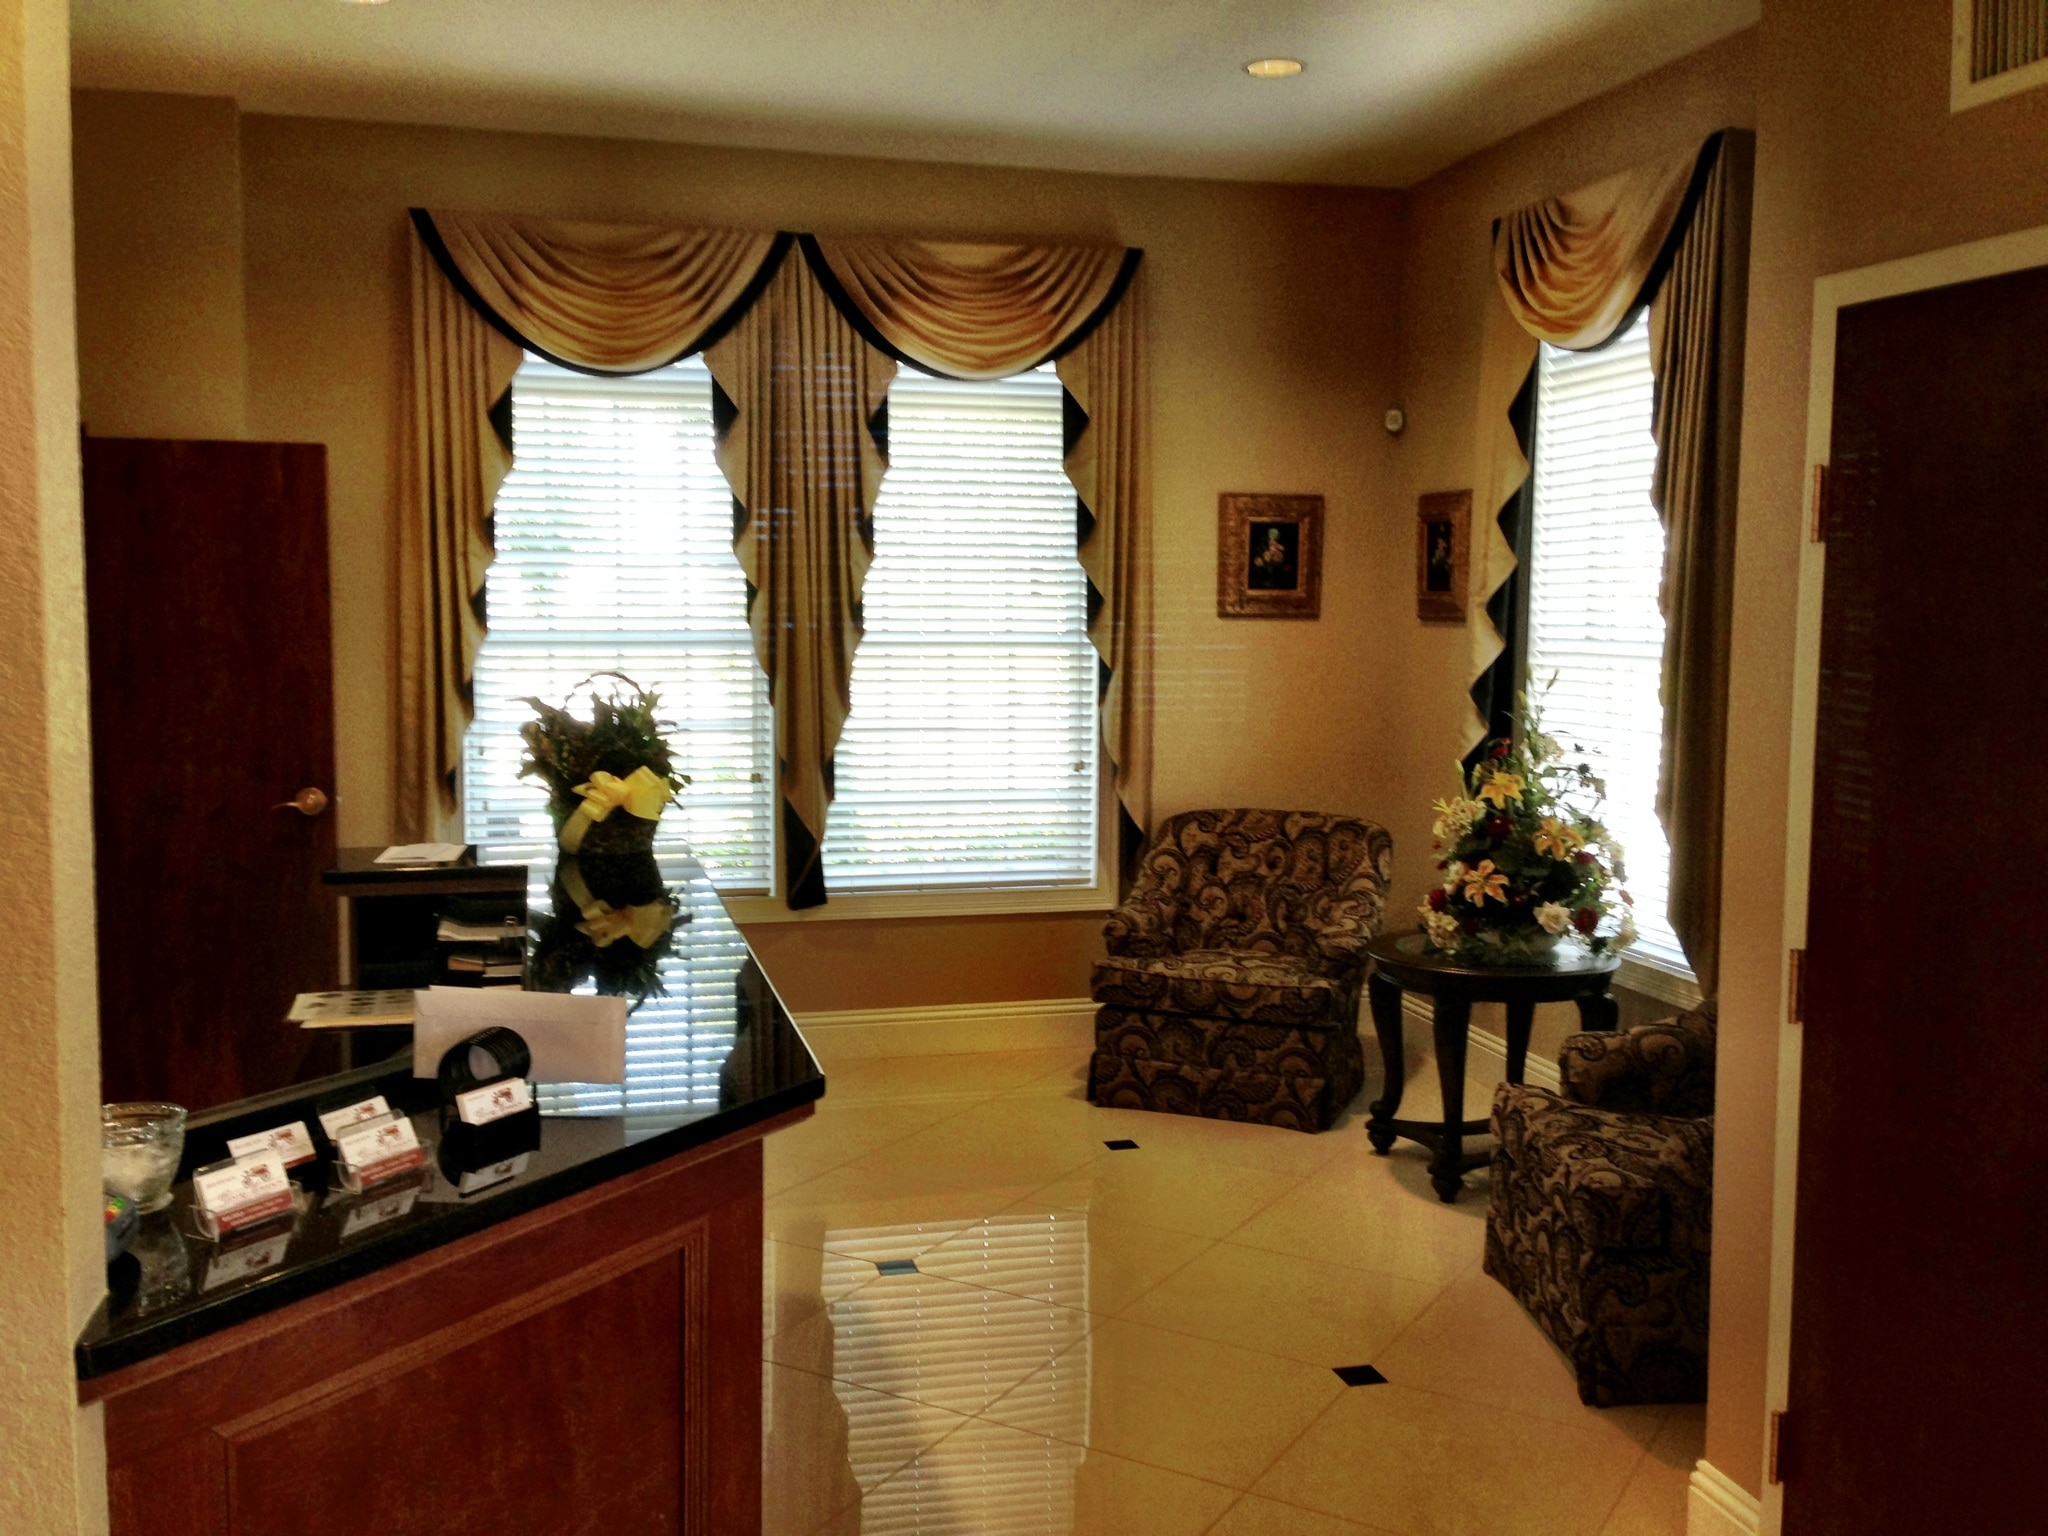 Flooring and Blinds at Funeral Home in Lakeland FL - Sunshine ...